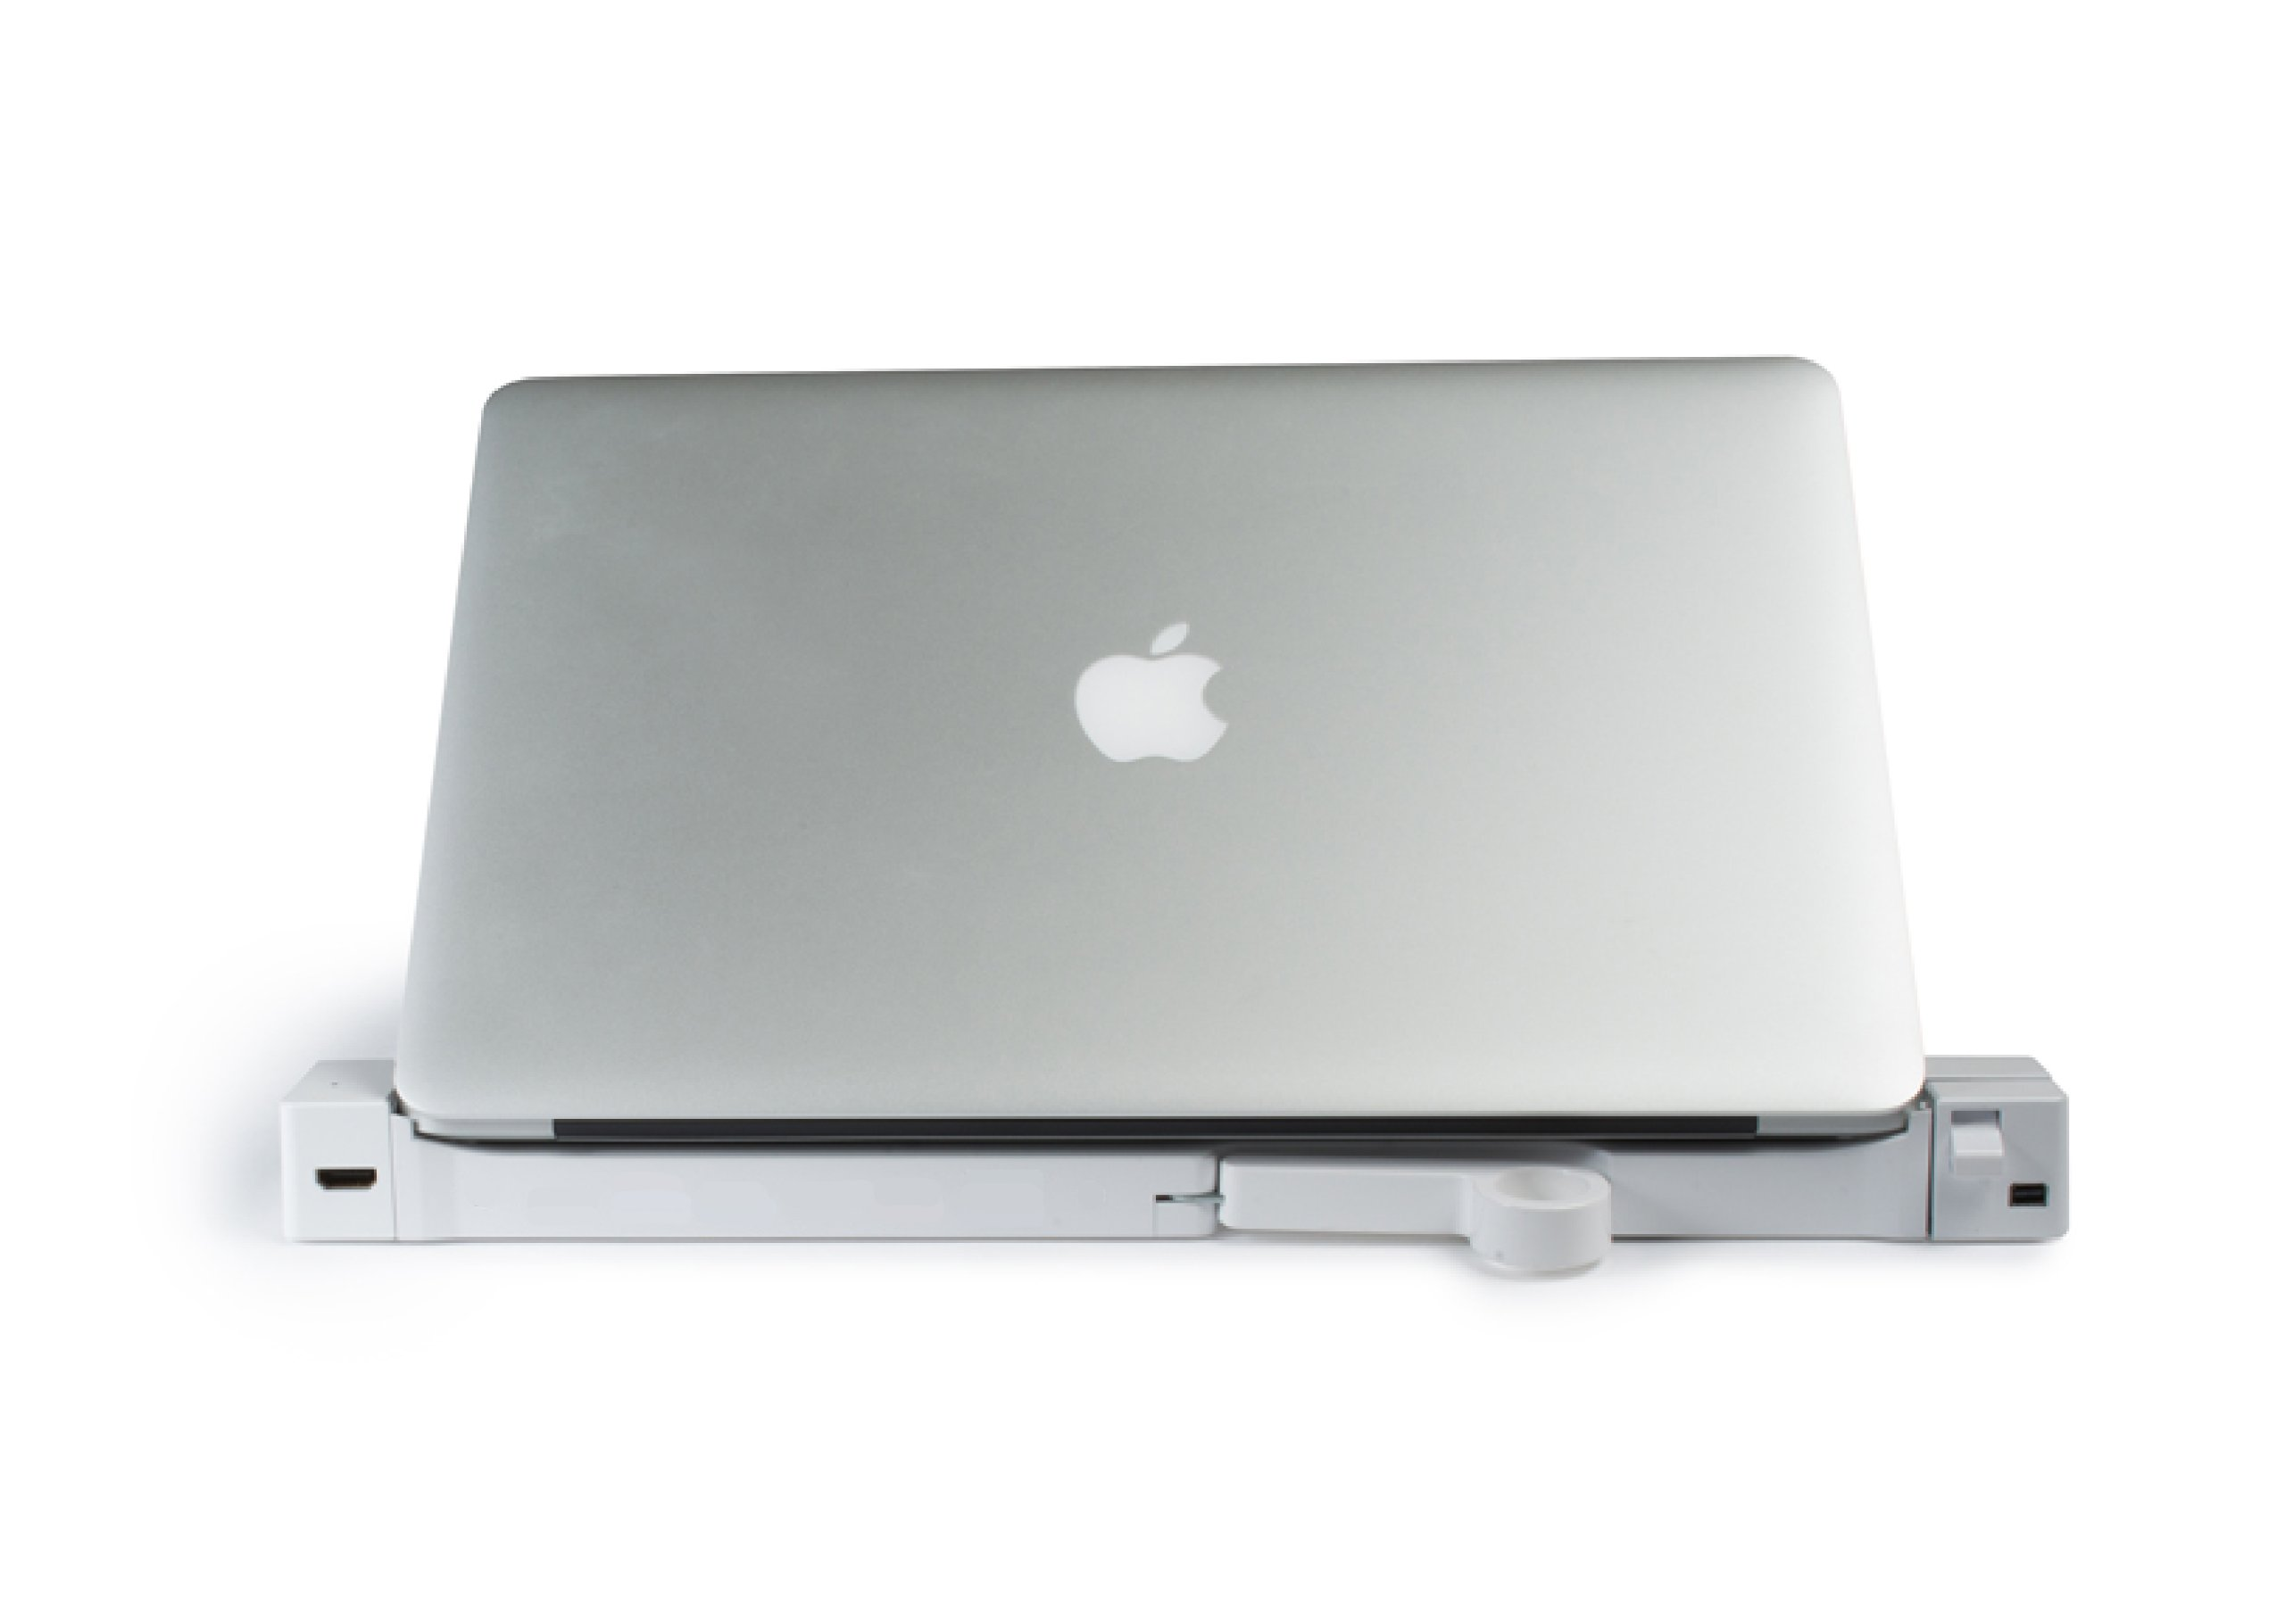 LandingZone DOCK Express Secure Docking Station for the 15-inch MacBook Pro with Retina Display Model A1398 Released 2012 to 2017